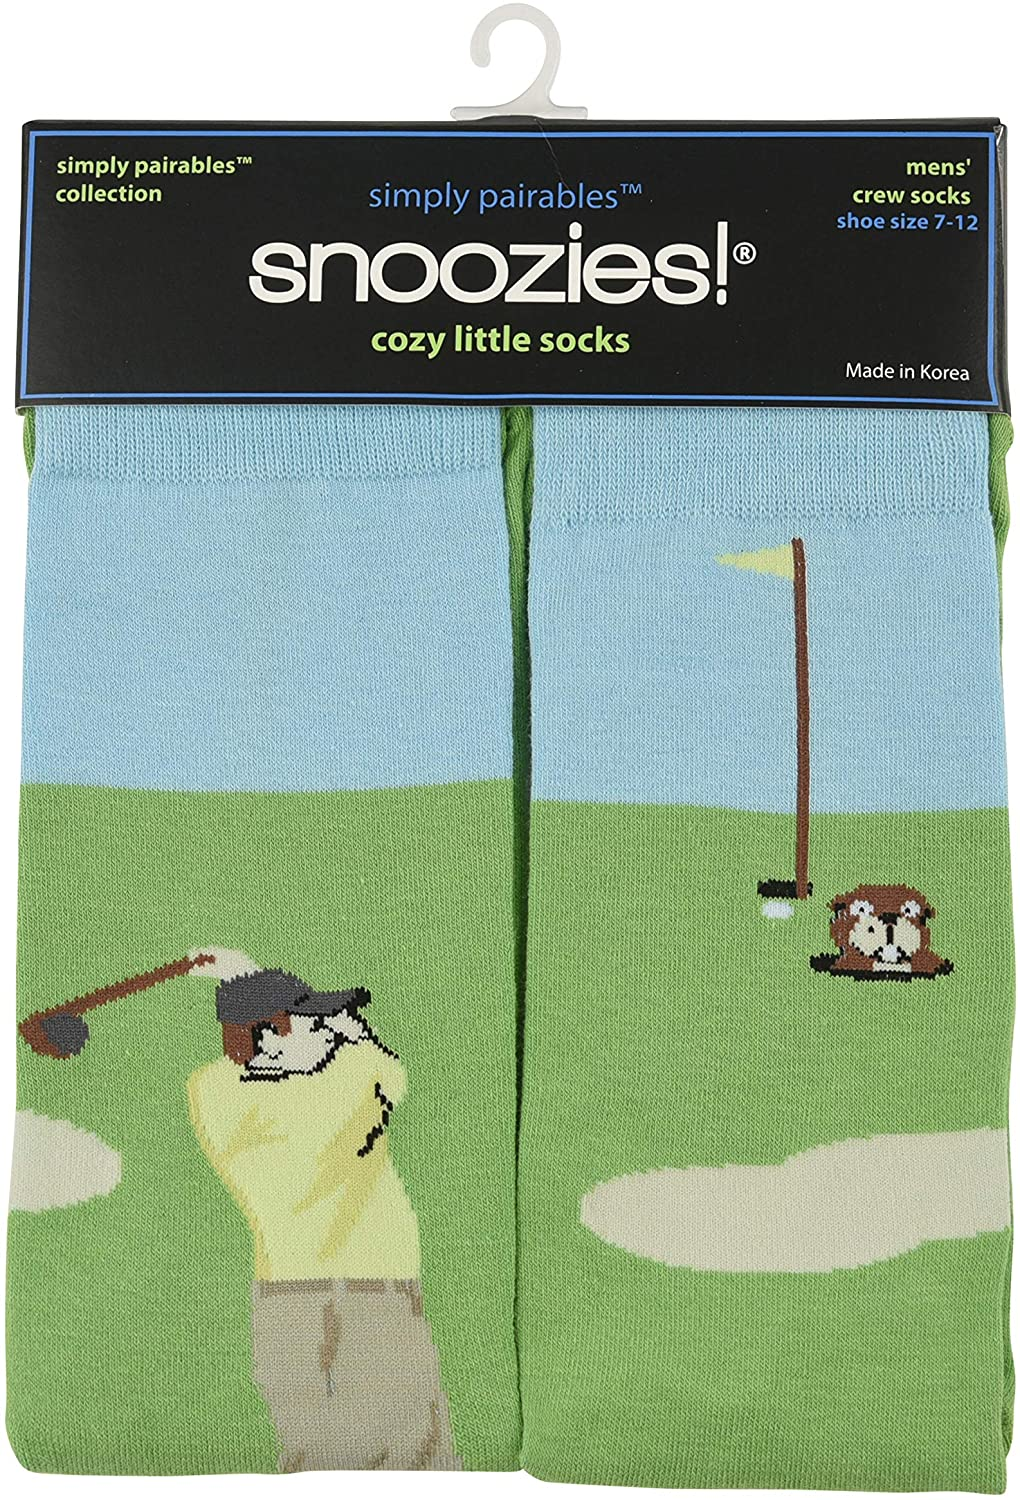 Snoozies Mens Simply Pairables Splitz Collection Novelty Dress Socks